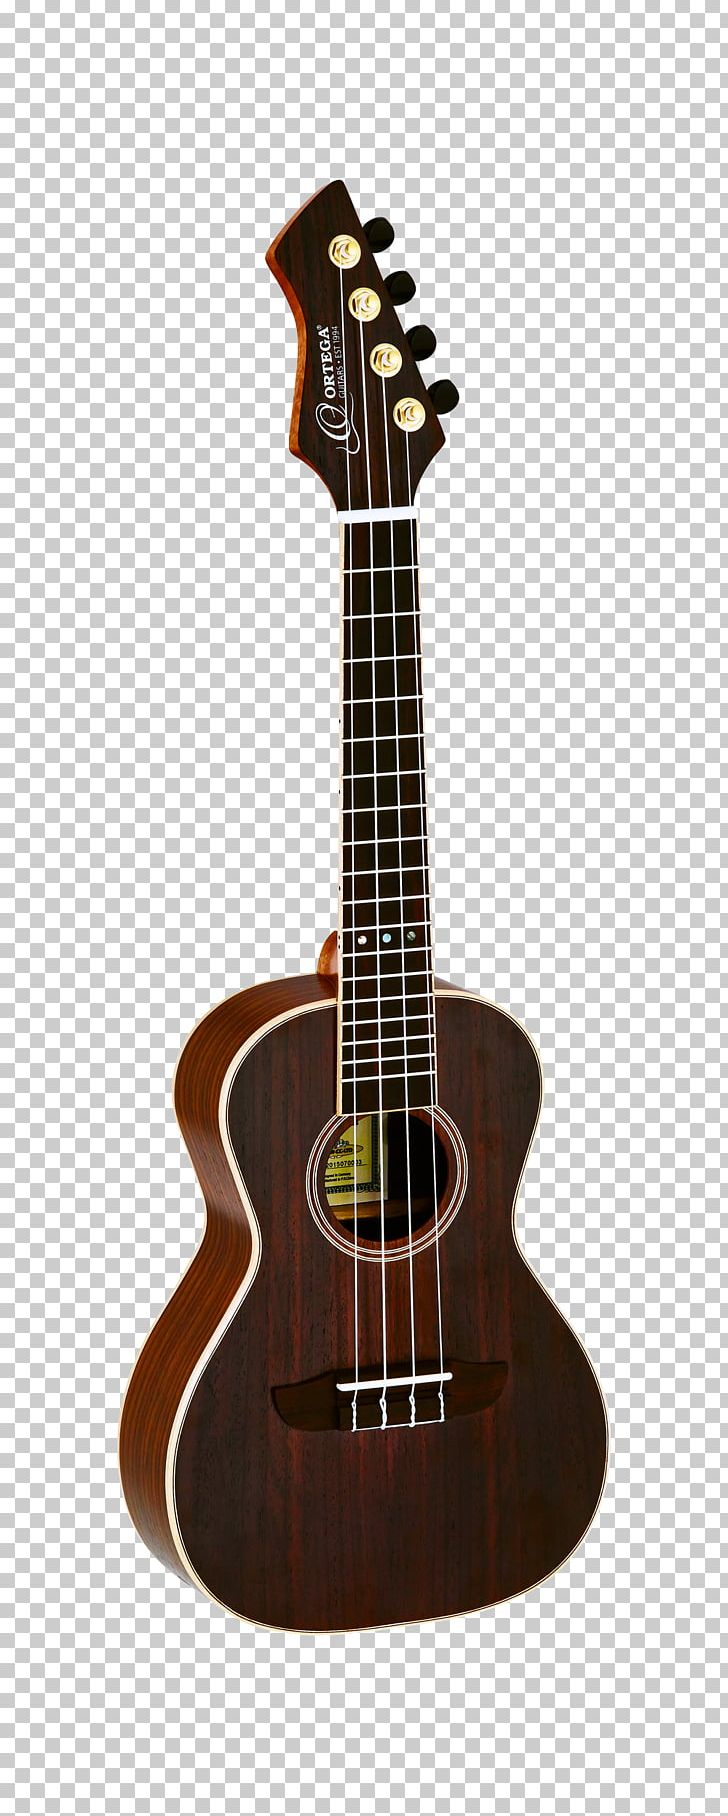 Ukulele Acoustic-electric Guitar String Instruments C. F. Martin & Company PNG, Clipart, Acoustic Electric Guitar, Acoustic Guitar, Amancio Ortega, Cuatro, Cutaway Free PNG Download